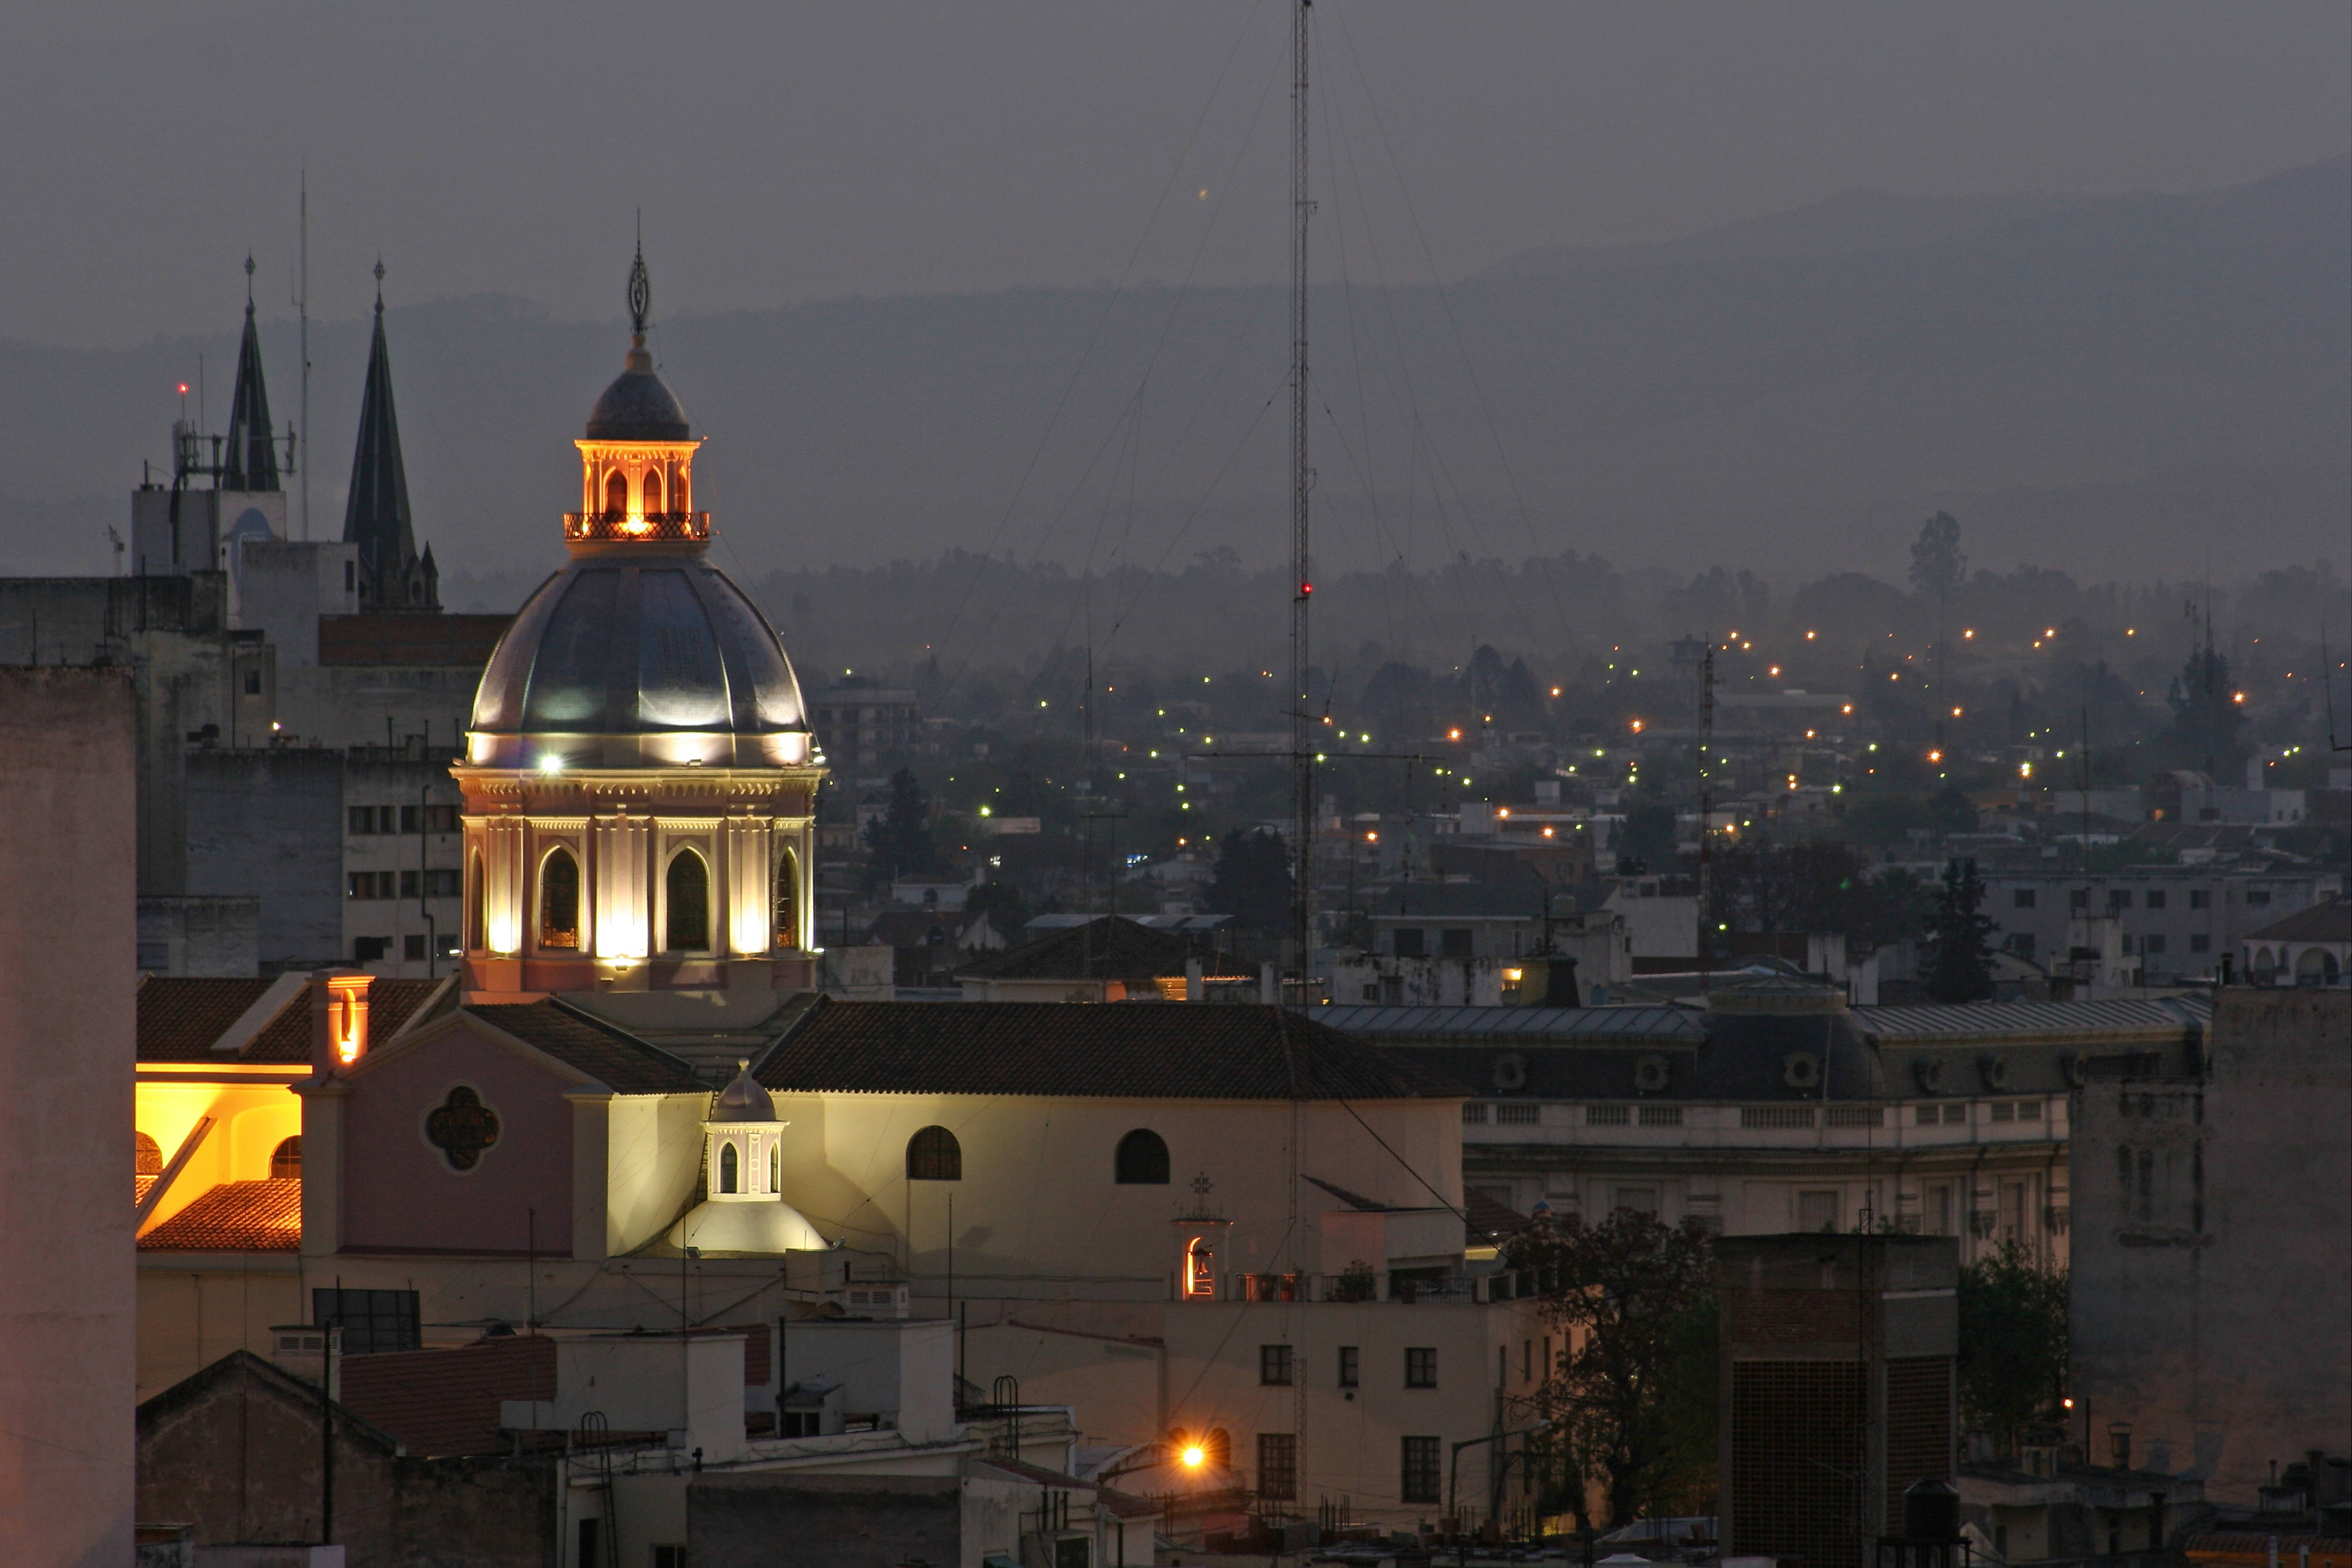 The City of Salta